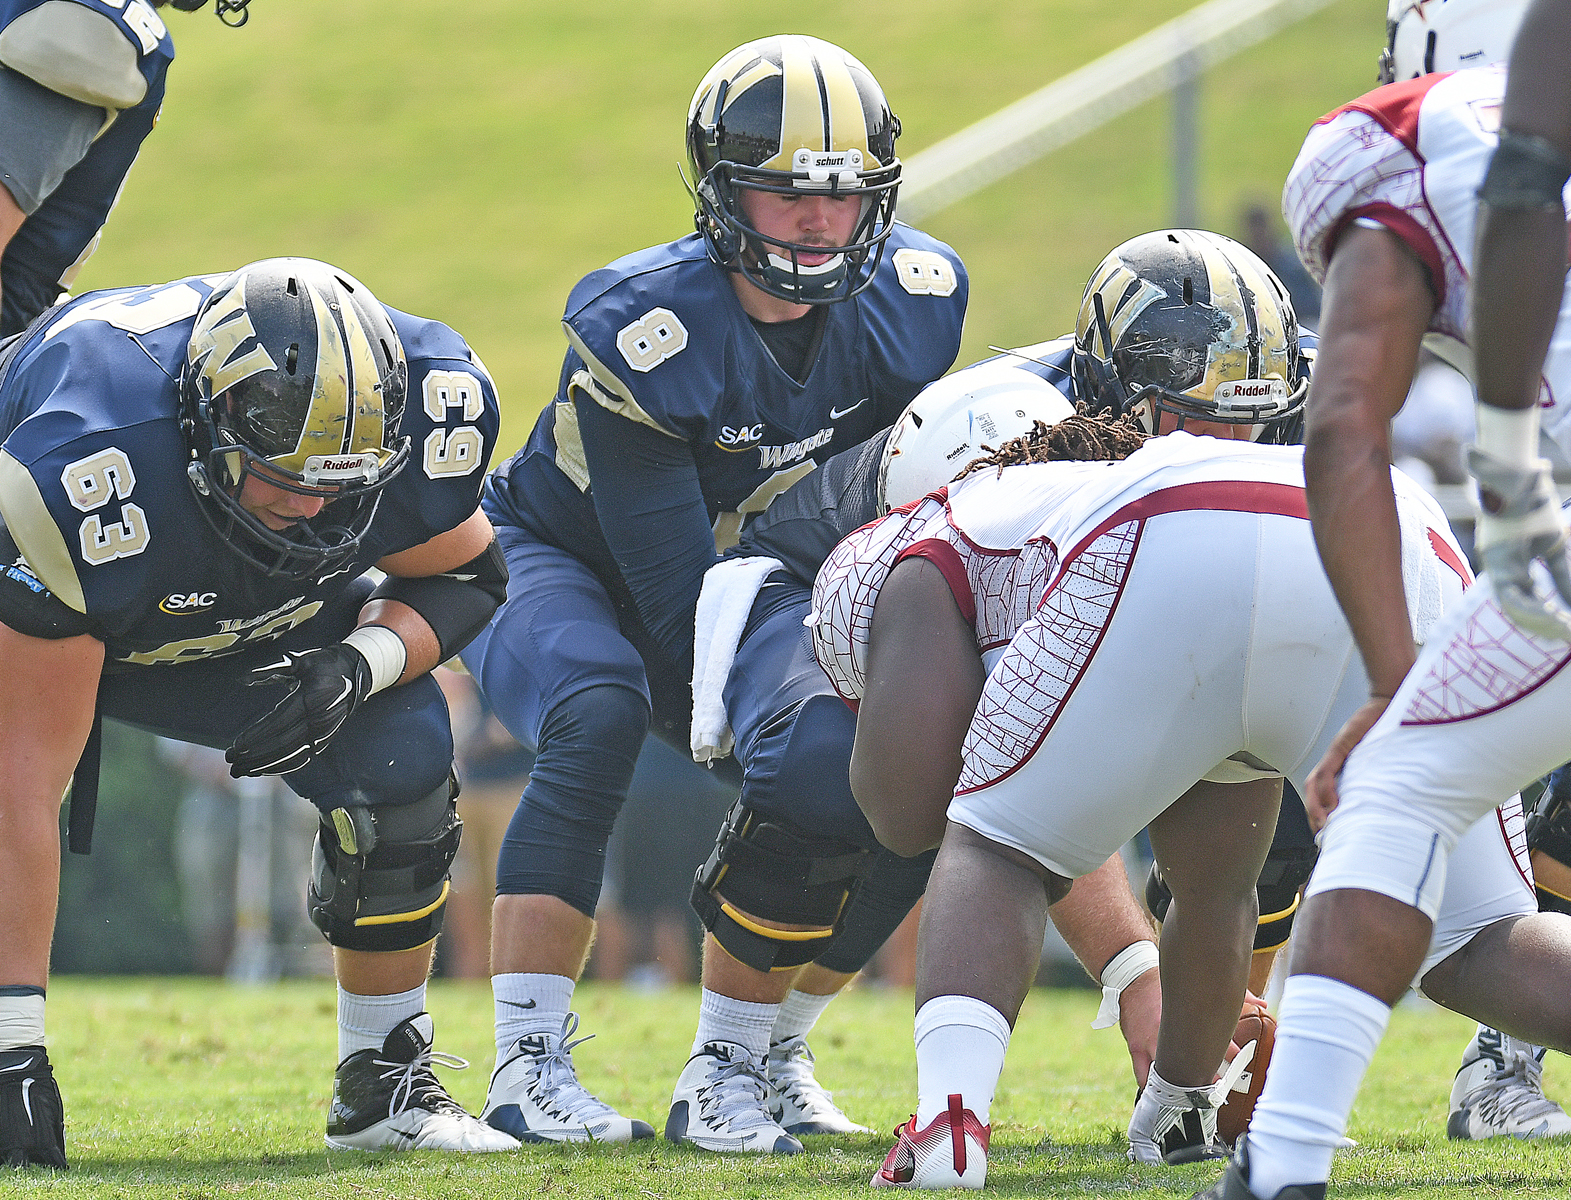 Wingate Football spring game is slated for Saturday, April ...